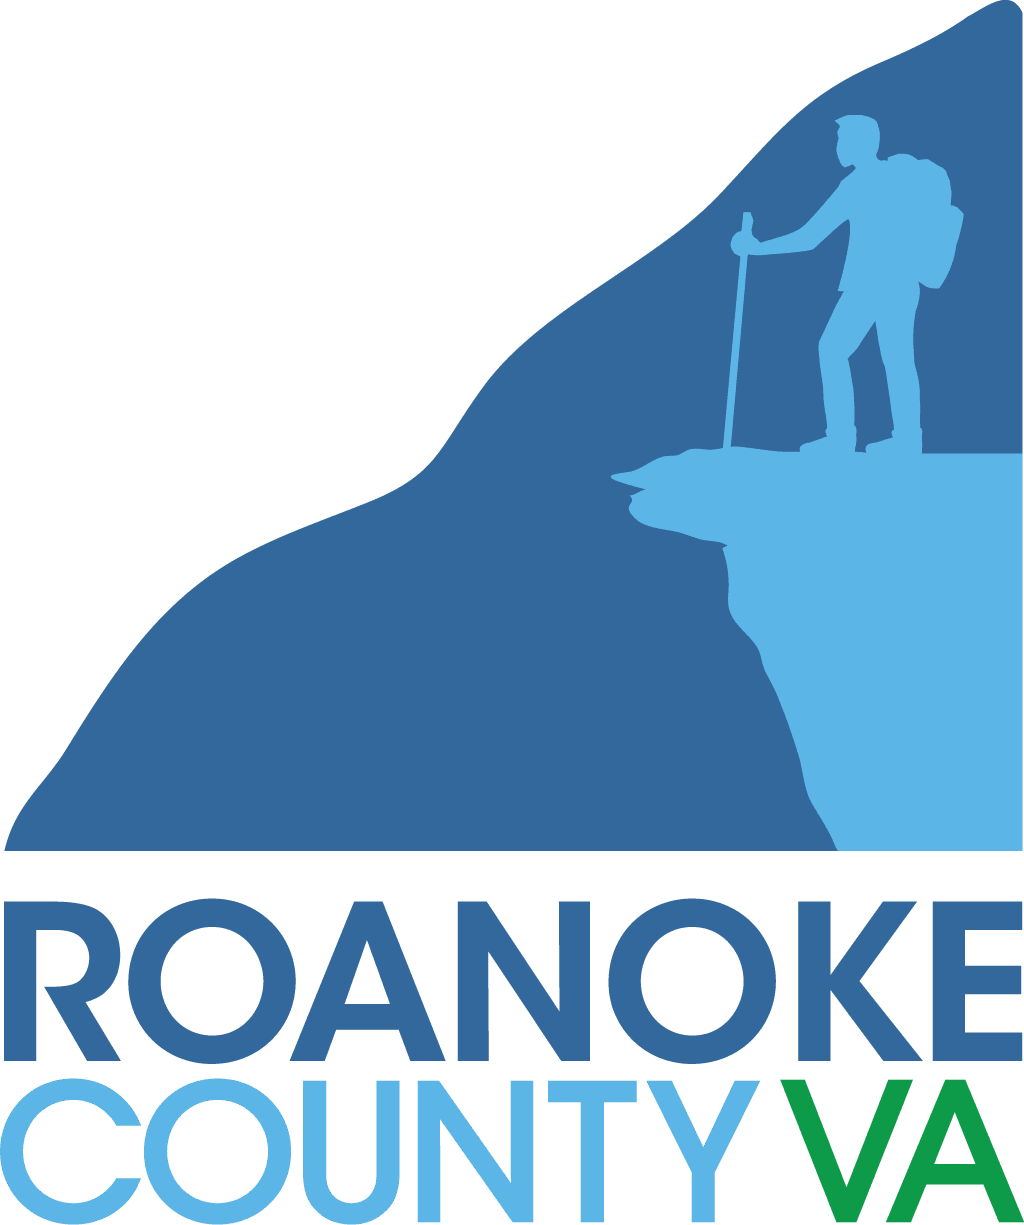 Roanoke County branding